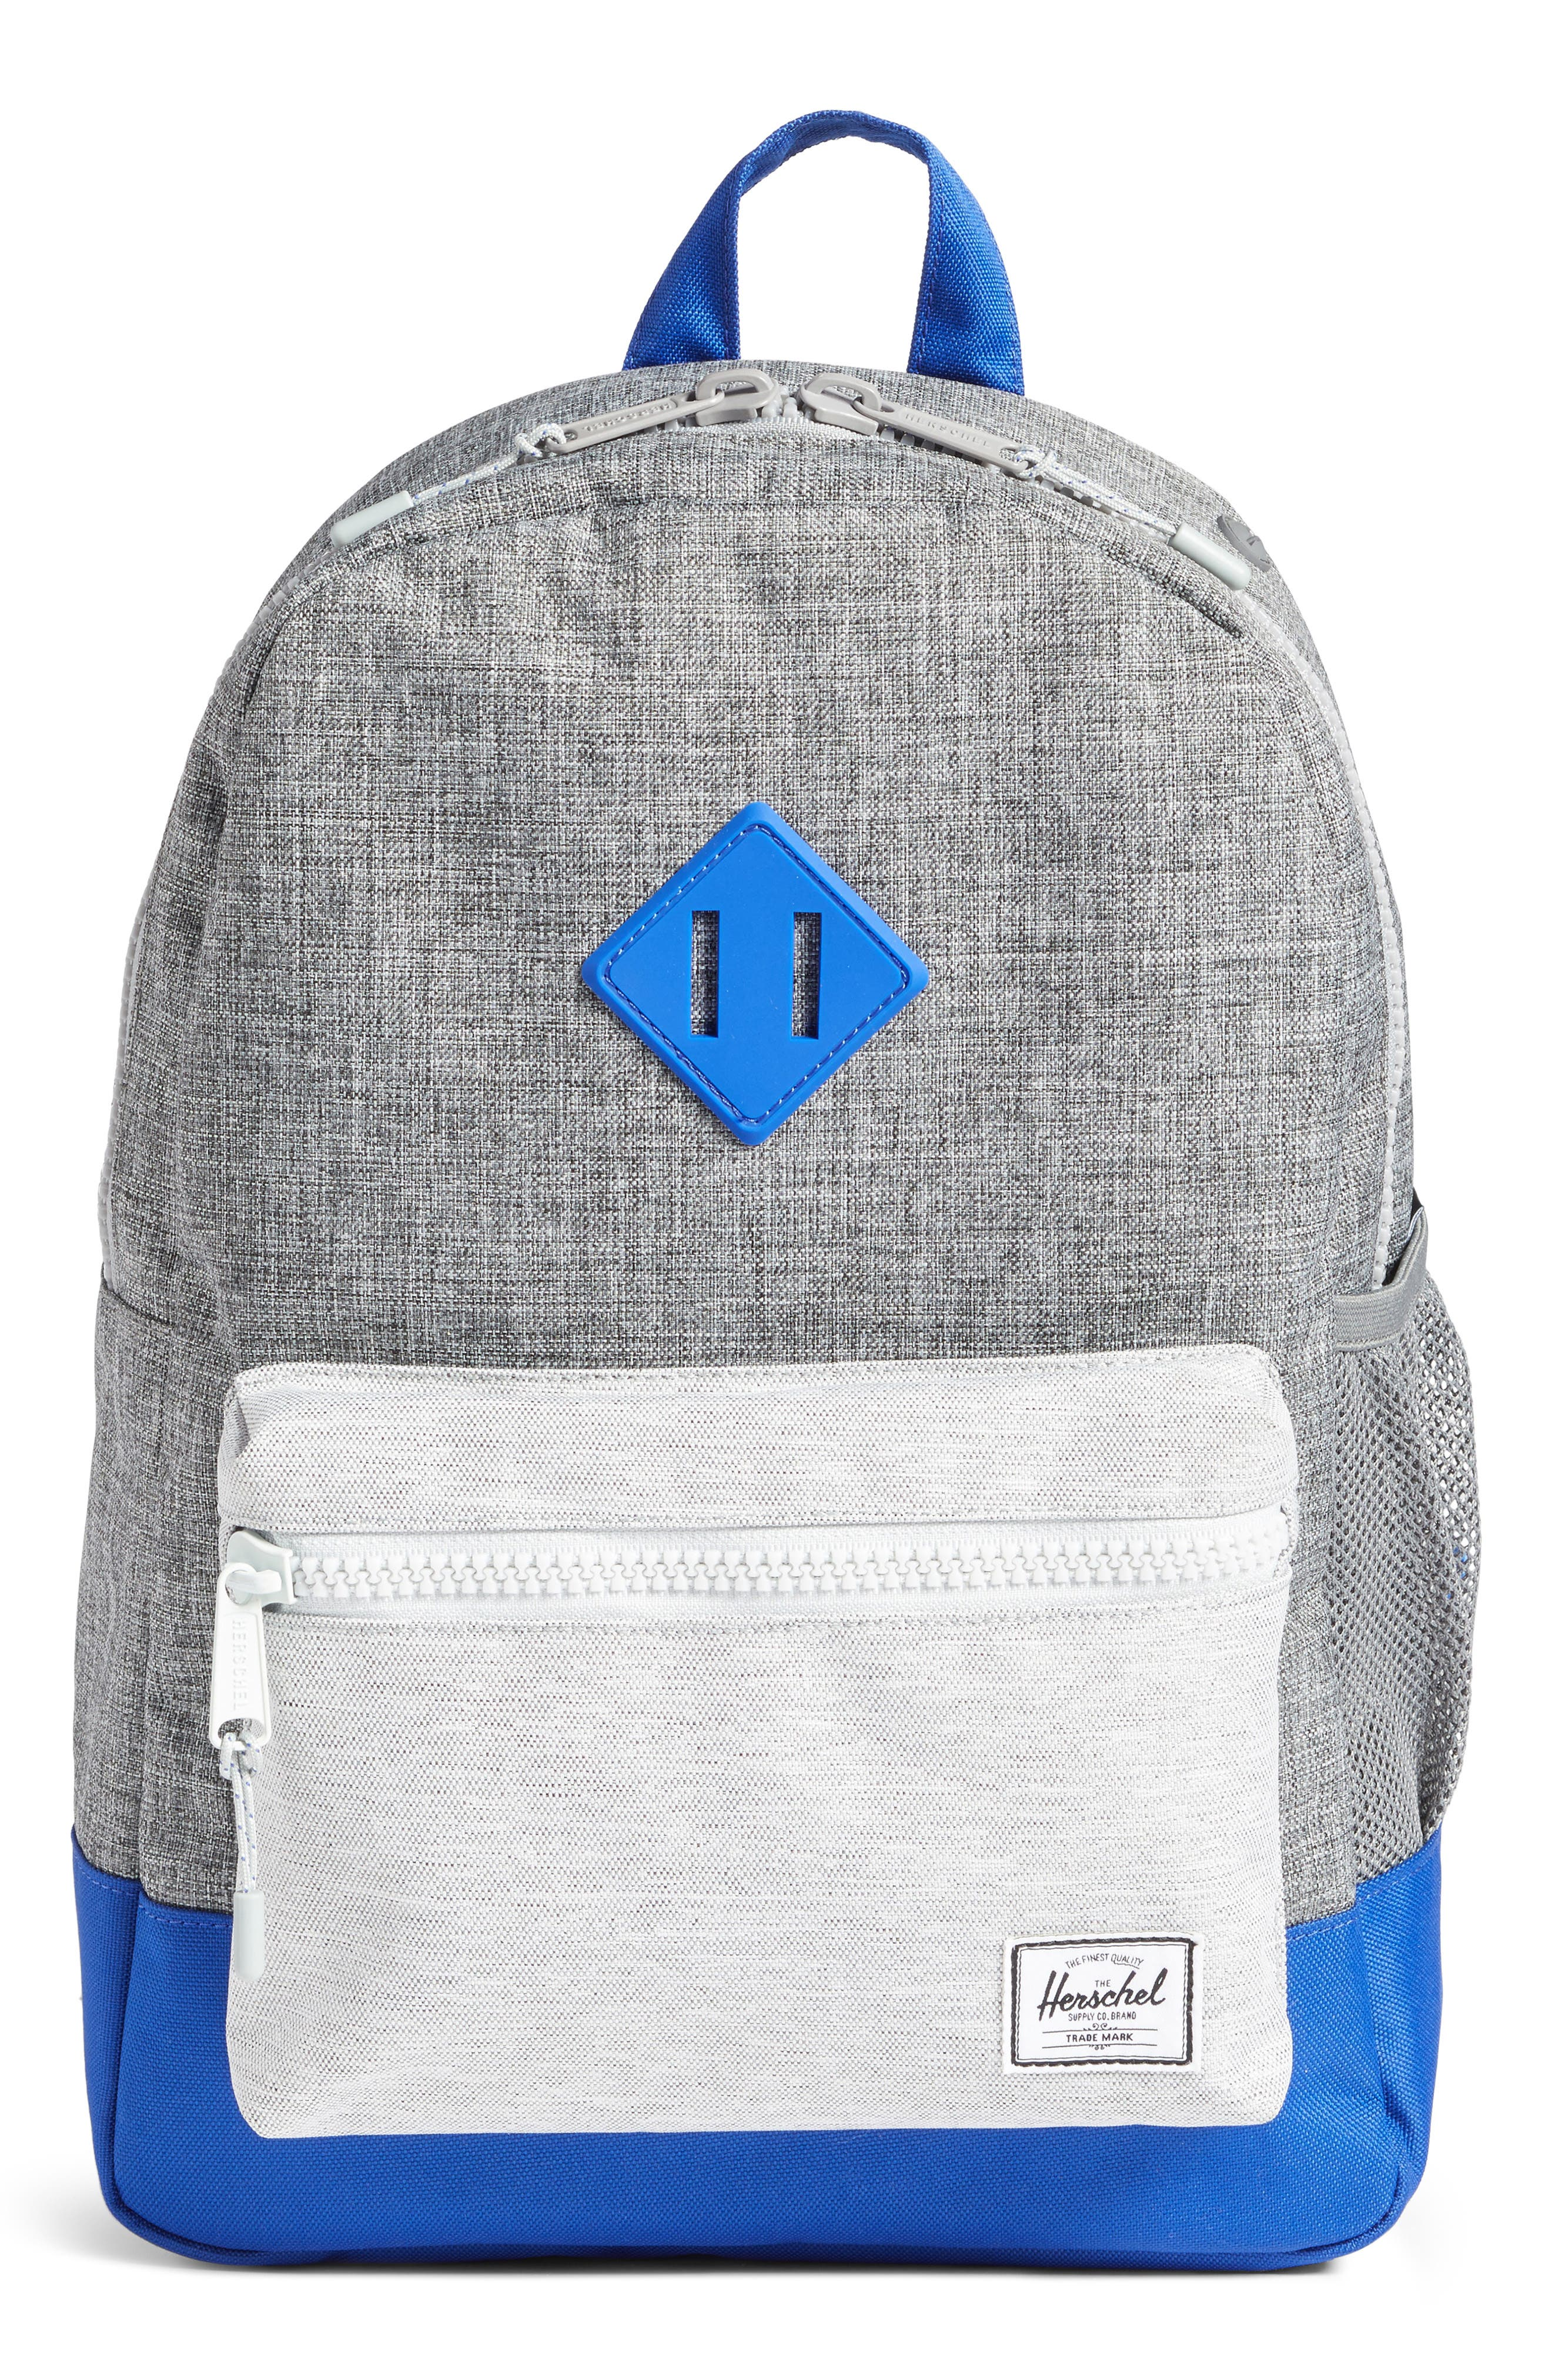 Heritage Colorblocked Backpack,                             Main thumbnail 1, color,                             001